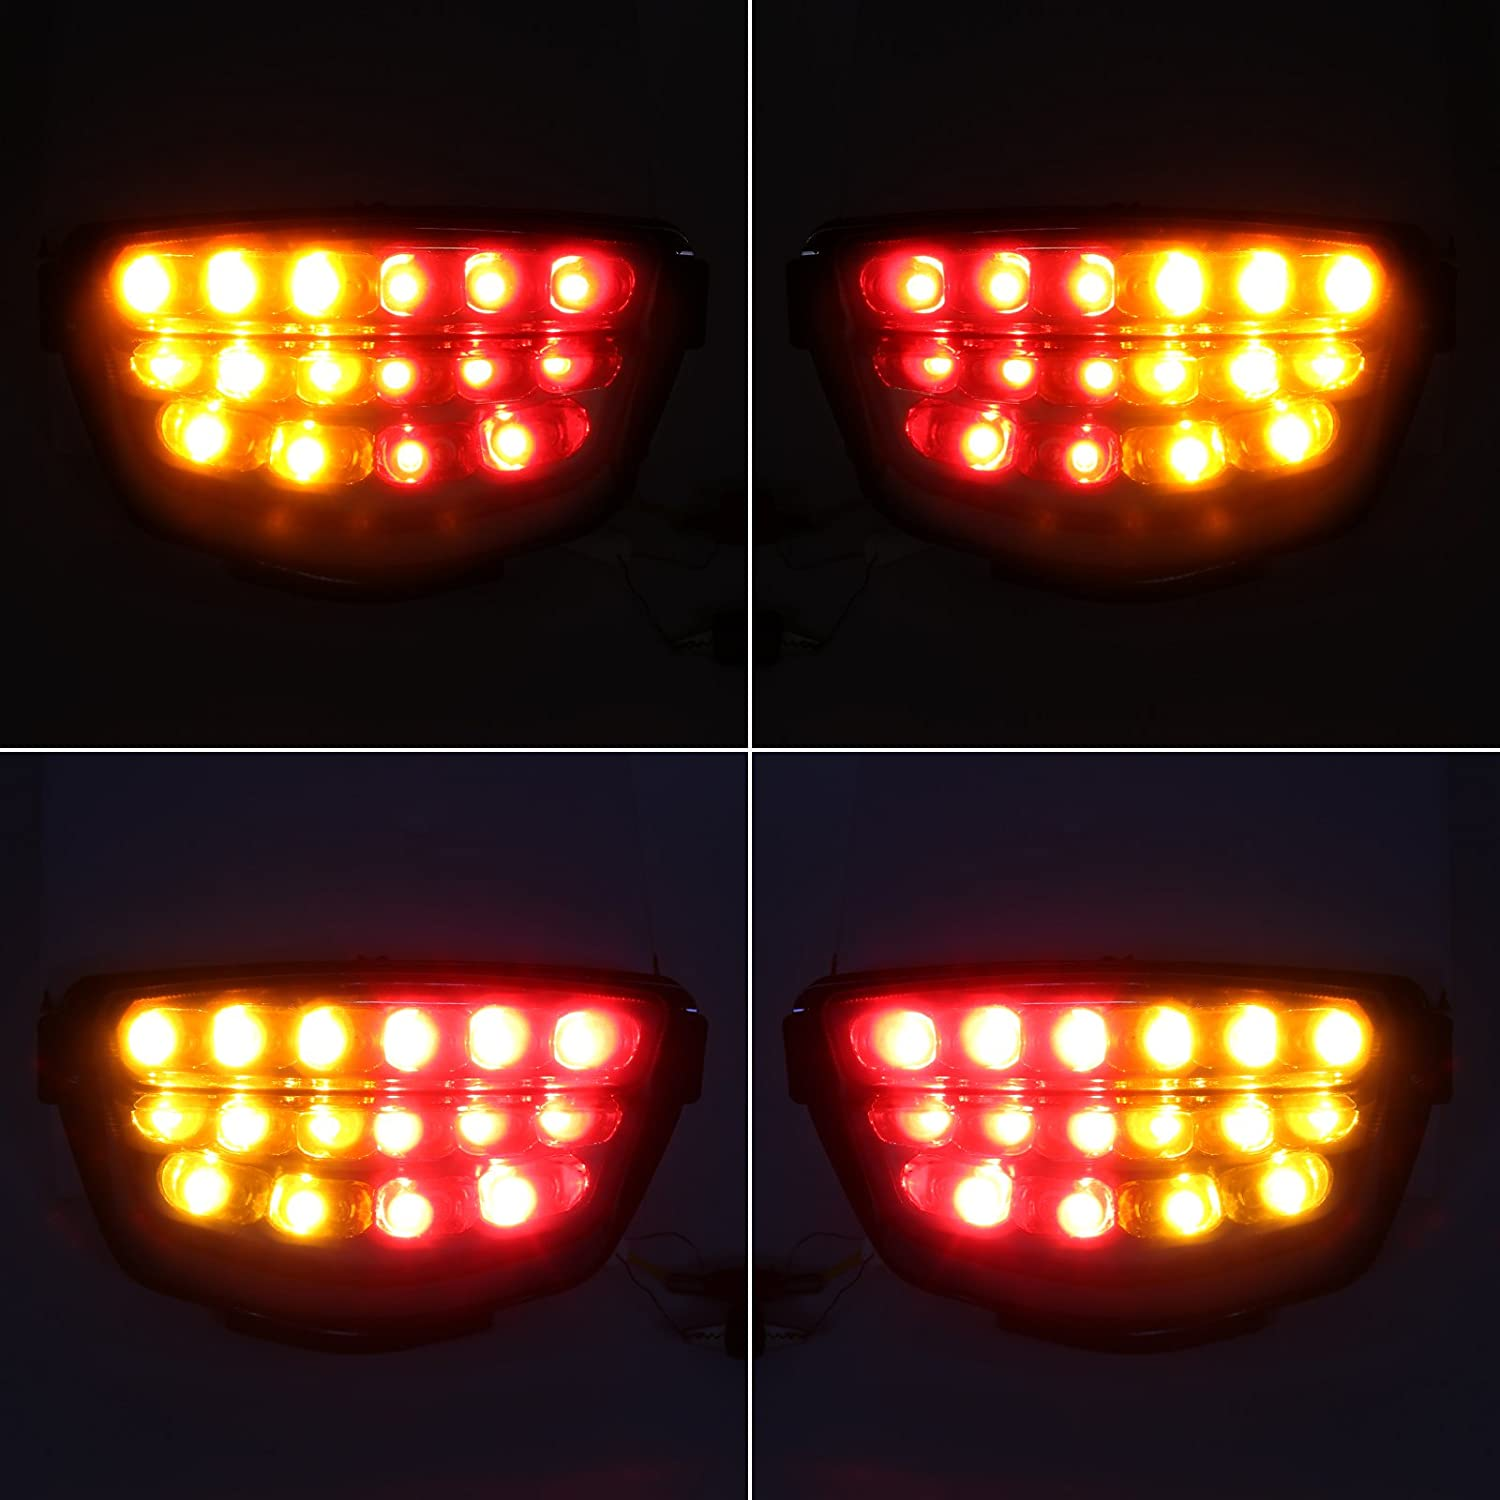 LED Intergrated Sequential Tail Light Smoke Lens for Honda CBR 1000RR 2008-2016